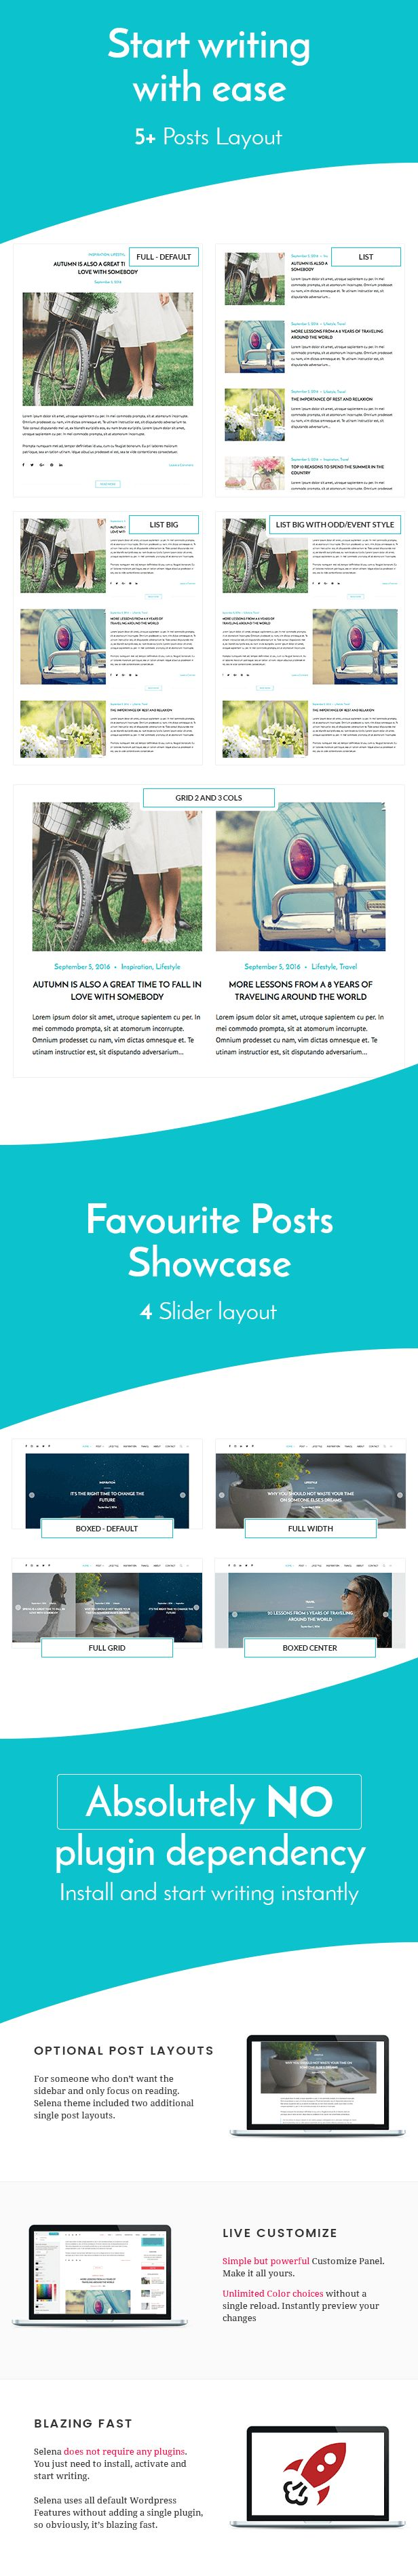 Selena  Personal WordPress Blog Theme (Personal)  Selena is a personal blog theme for WordPress with modern and clean design it has everything you need to start your own blog. Its very easy to use and power your imagination with live customize panel. You can select from 5 post layout styles for your homepage and pick other one for all archive pages select from 2 layouts for single post view select from 4 layouts for banner slides and more  Selena does not require any additional plugins to…